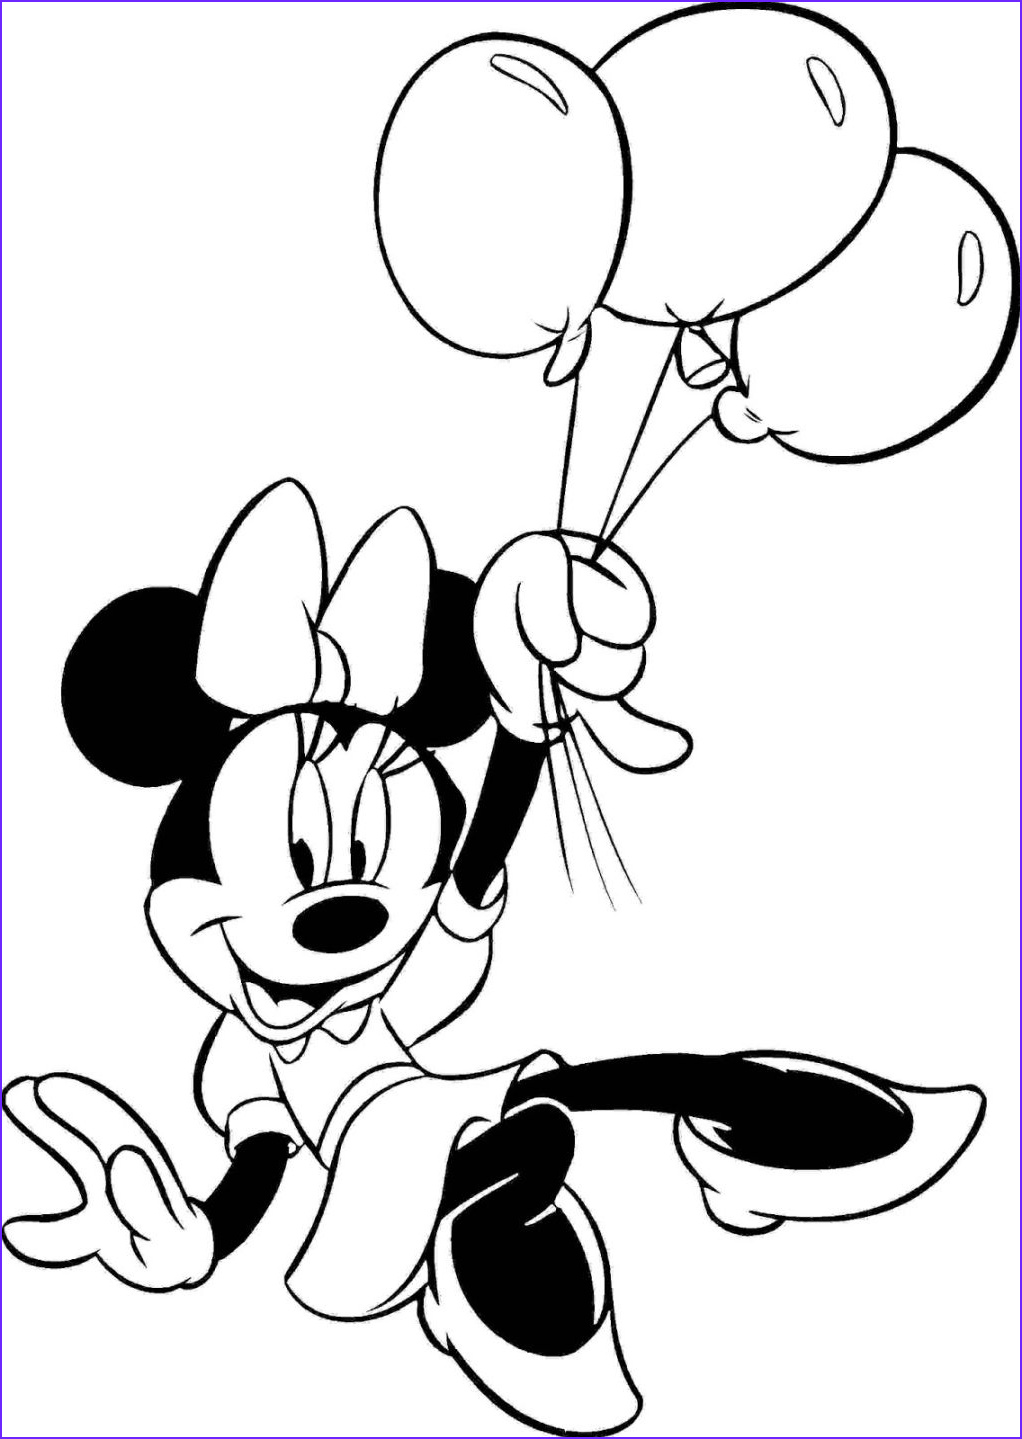 Mickey Mouse Printable Coloring Pages Cool Images Birthday Coloring Pages